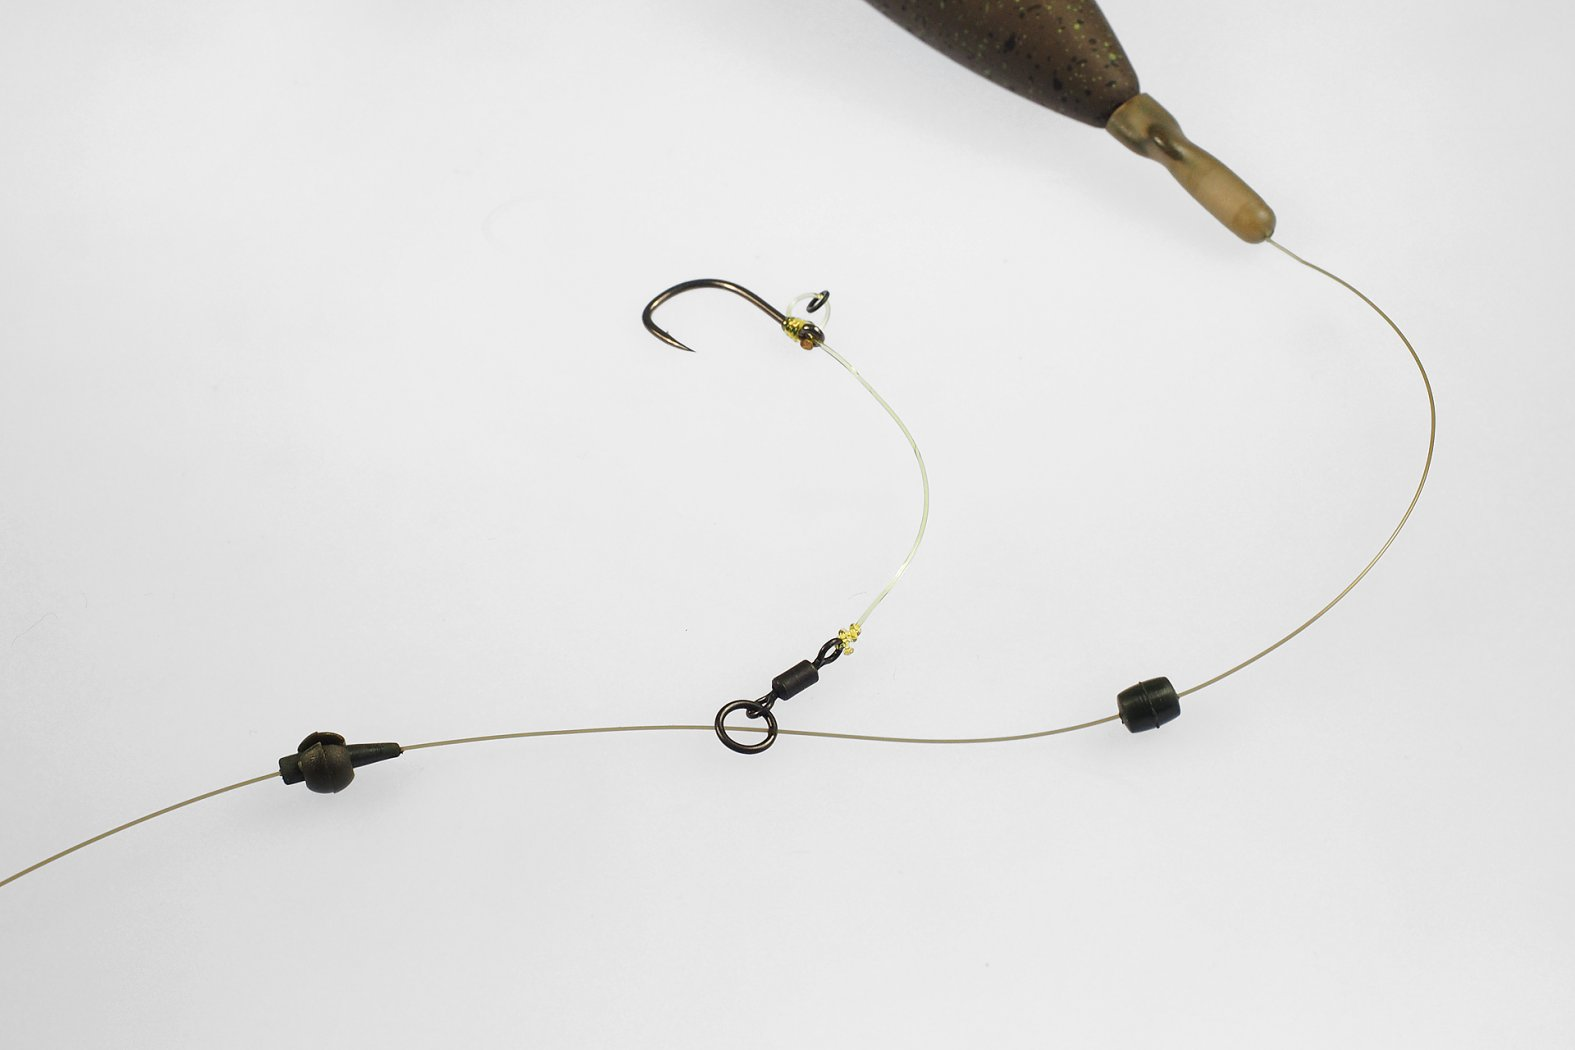 Chod Rig ohne Leadcore